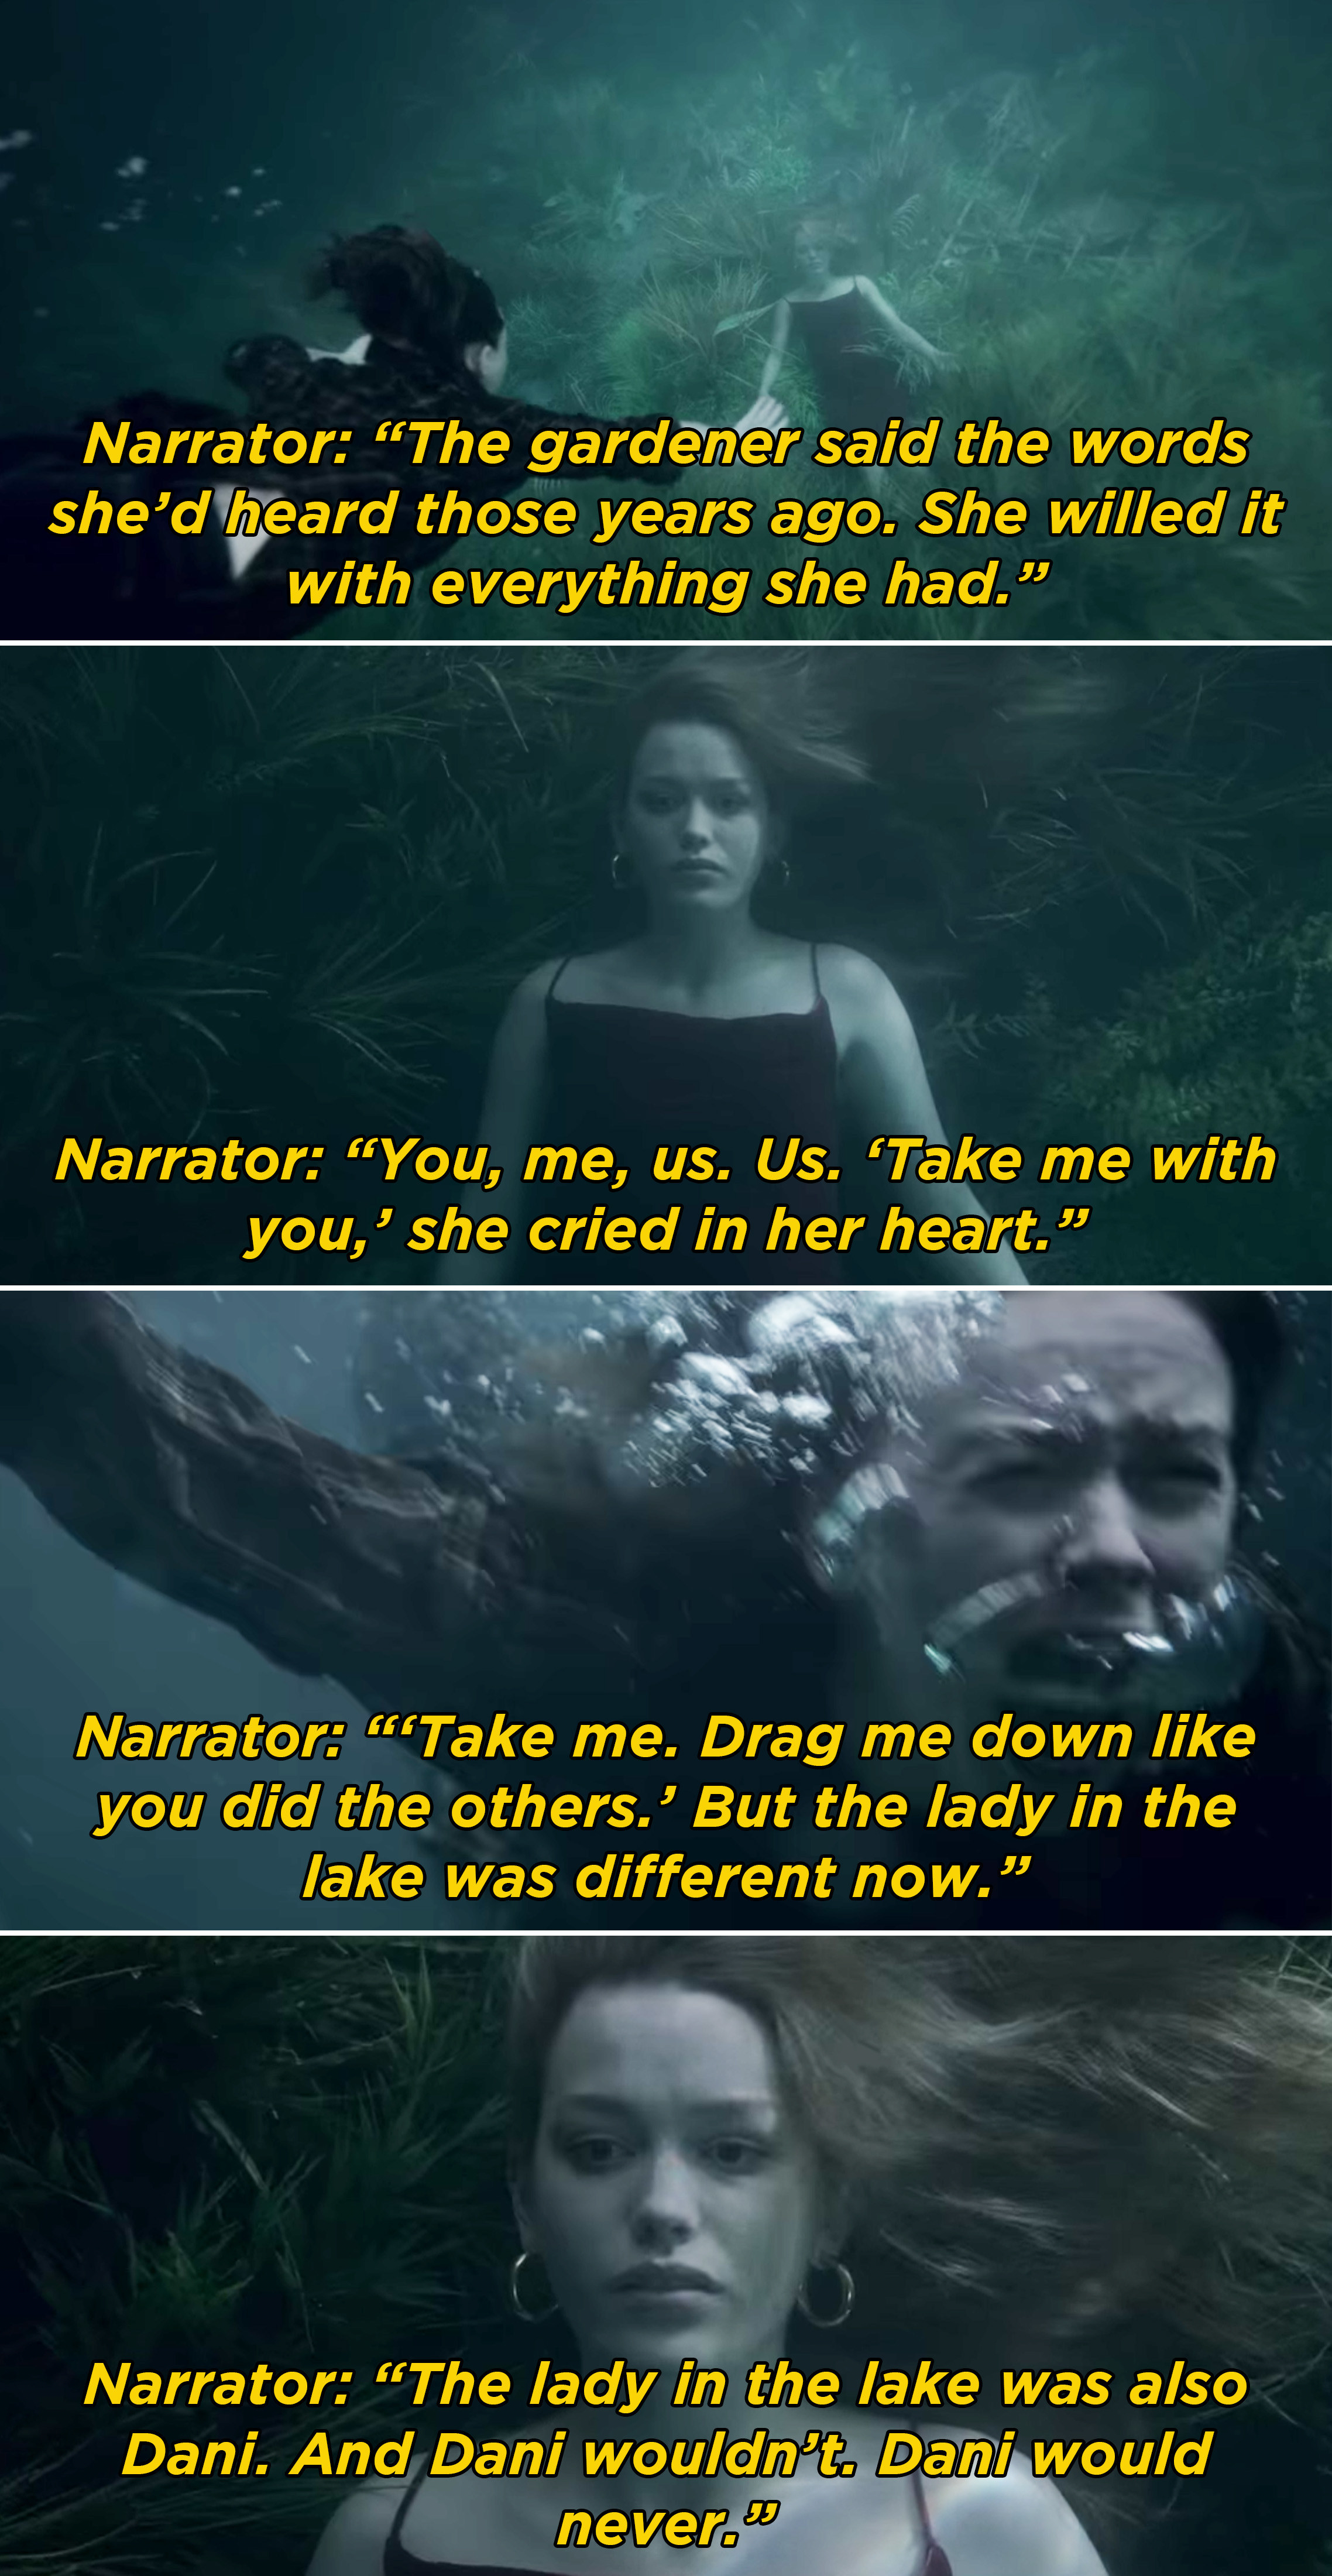 Jamie swimming to the bottom of the lake and seeing Dani and trying to get her to take her